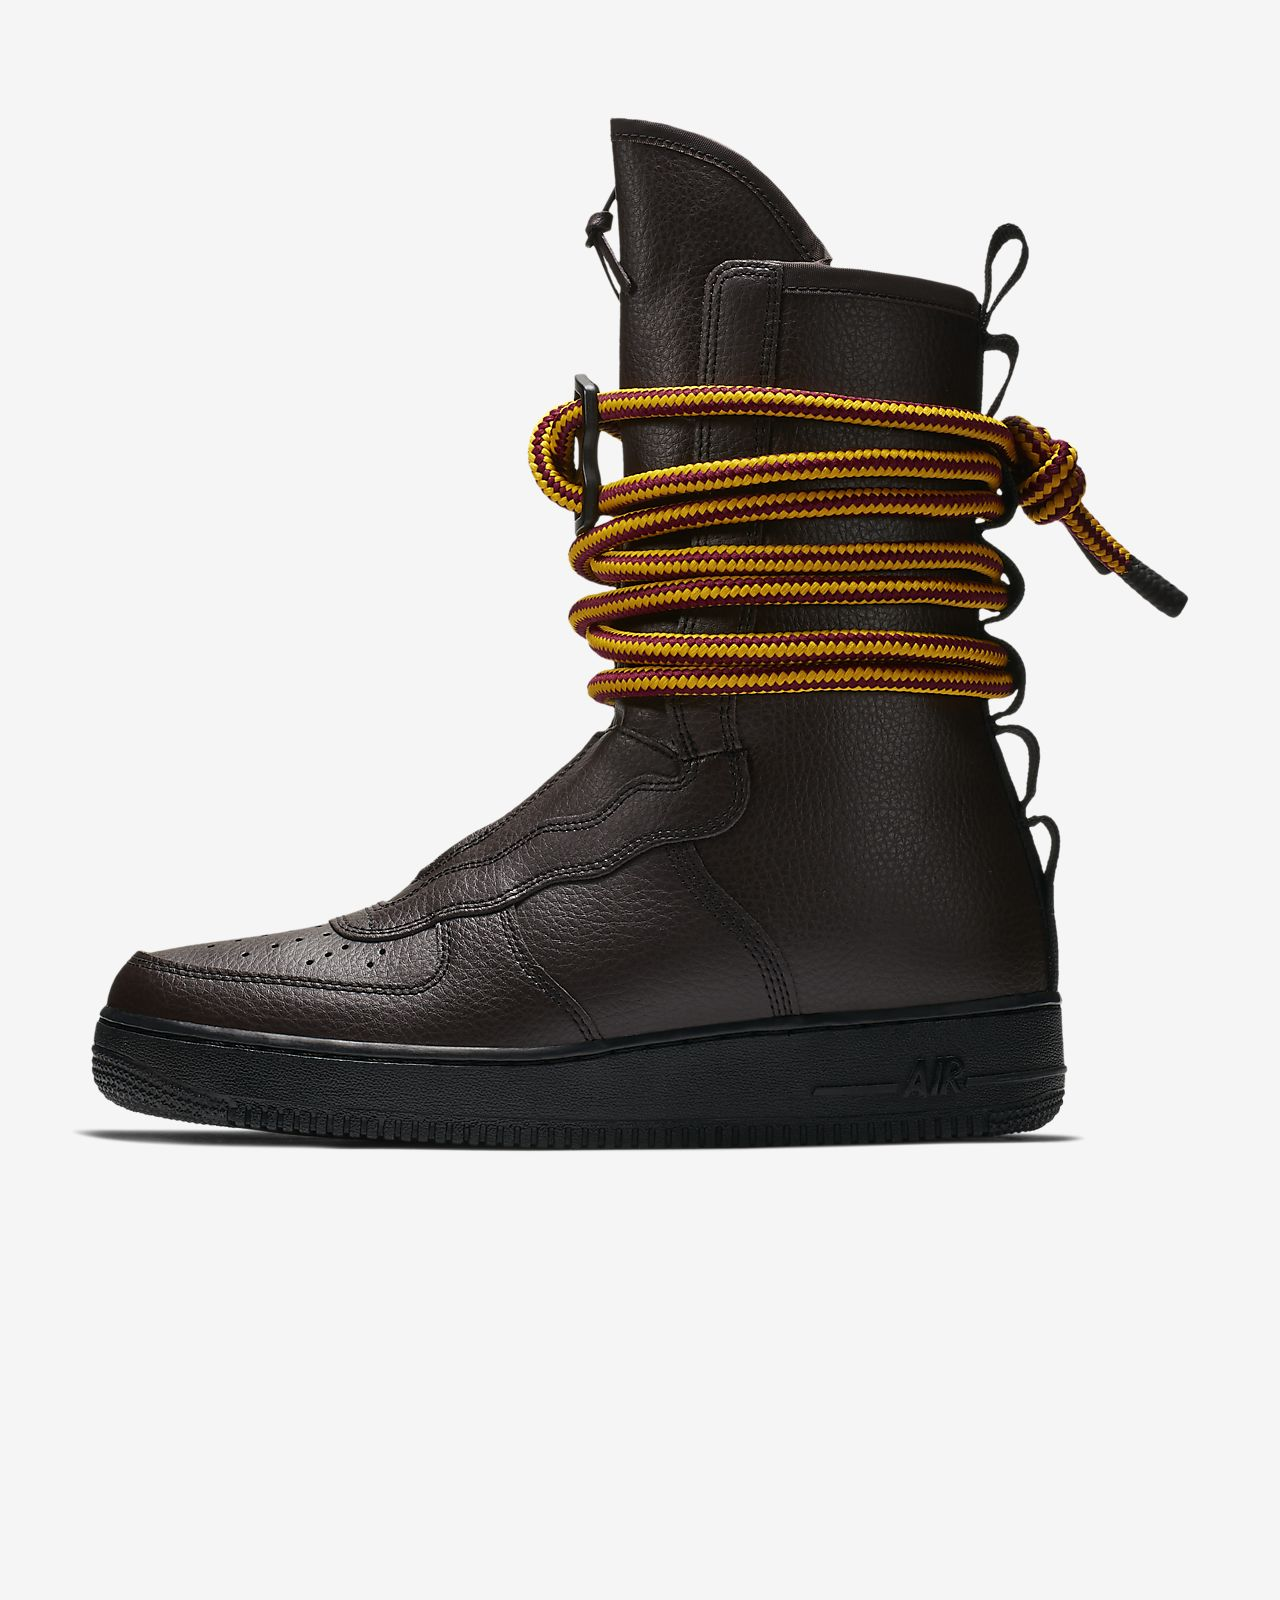 new concept 60f17 aa955 ... Nike SF Air Force 1 High Men s Boot